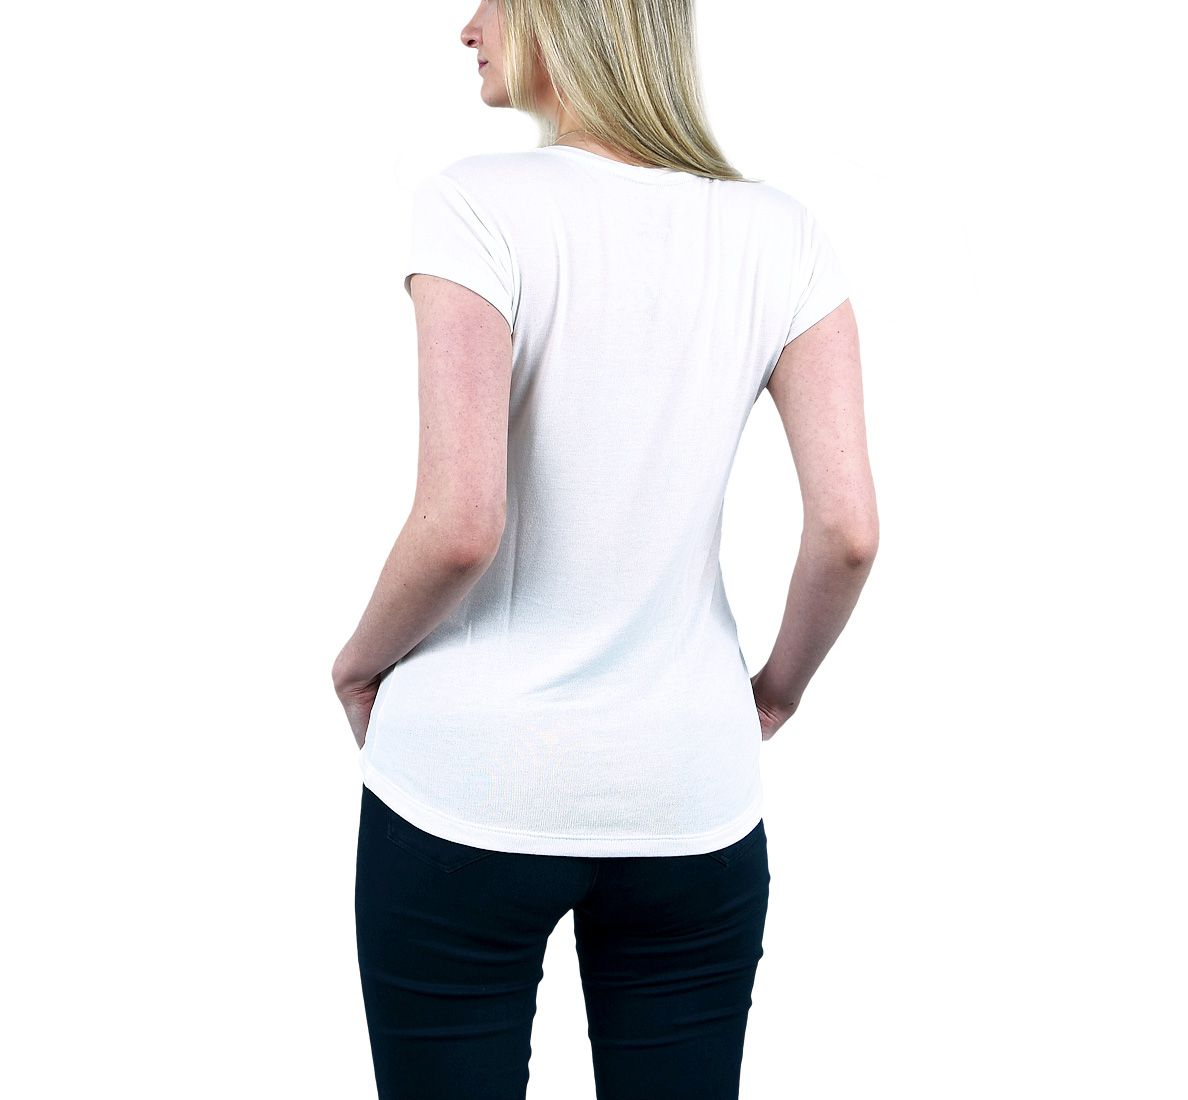 Camiseta Kona Fem - Off White - Woom 247